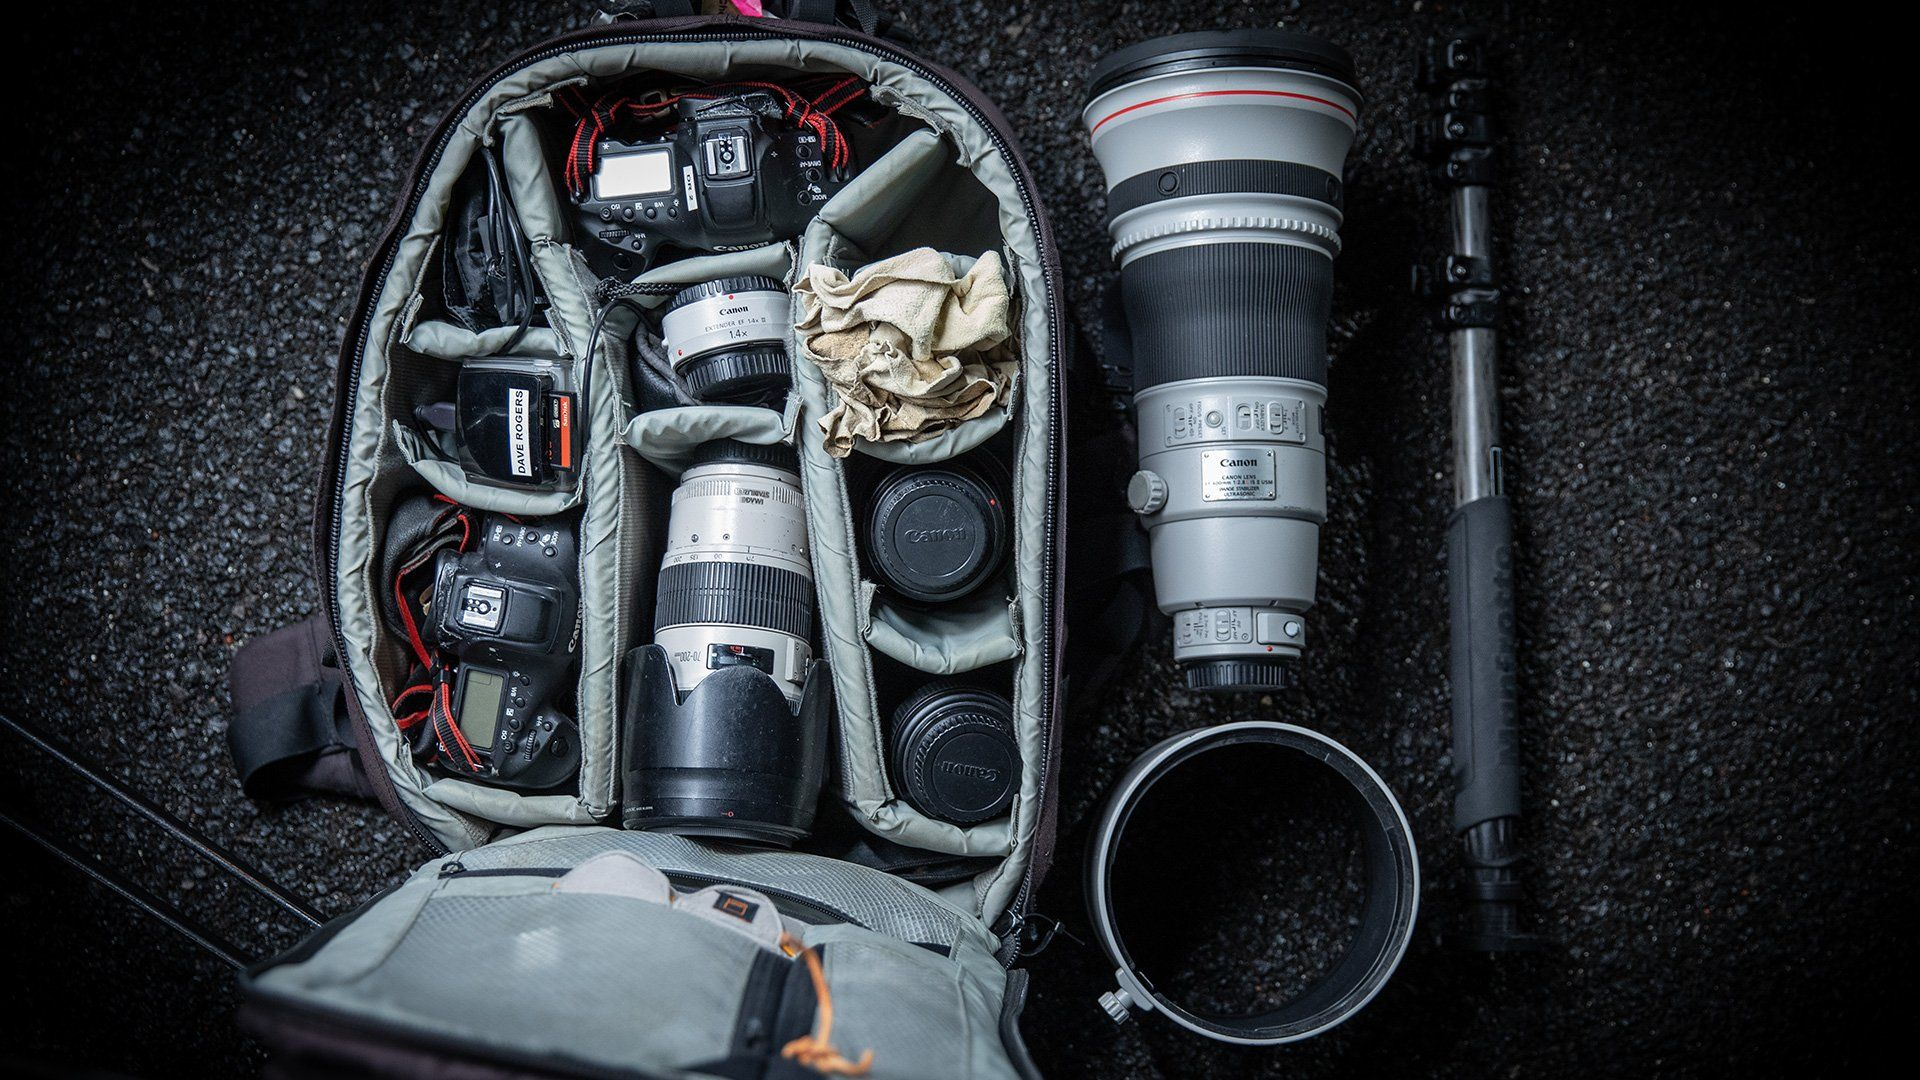 Dave Rogers' kitbag containing two Canon DSLR bodies and a number of lenses.